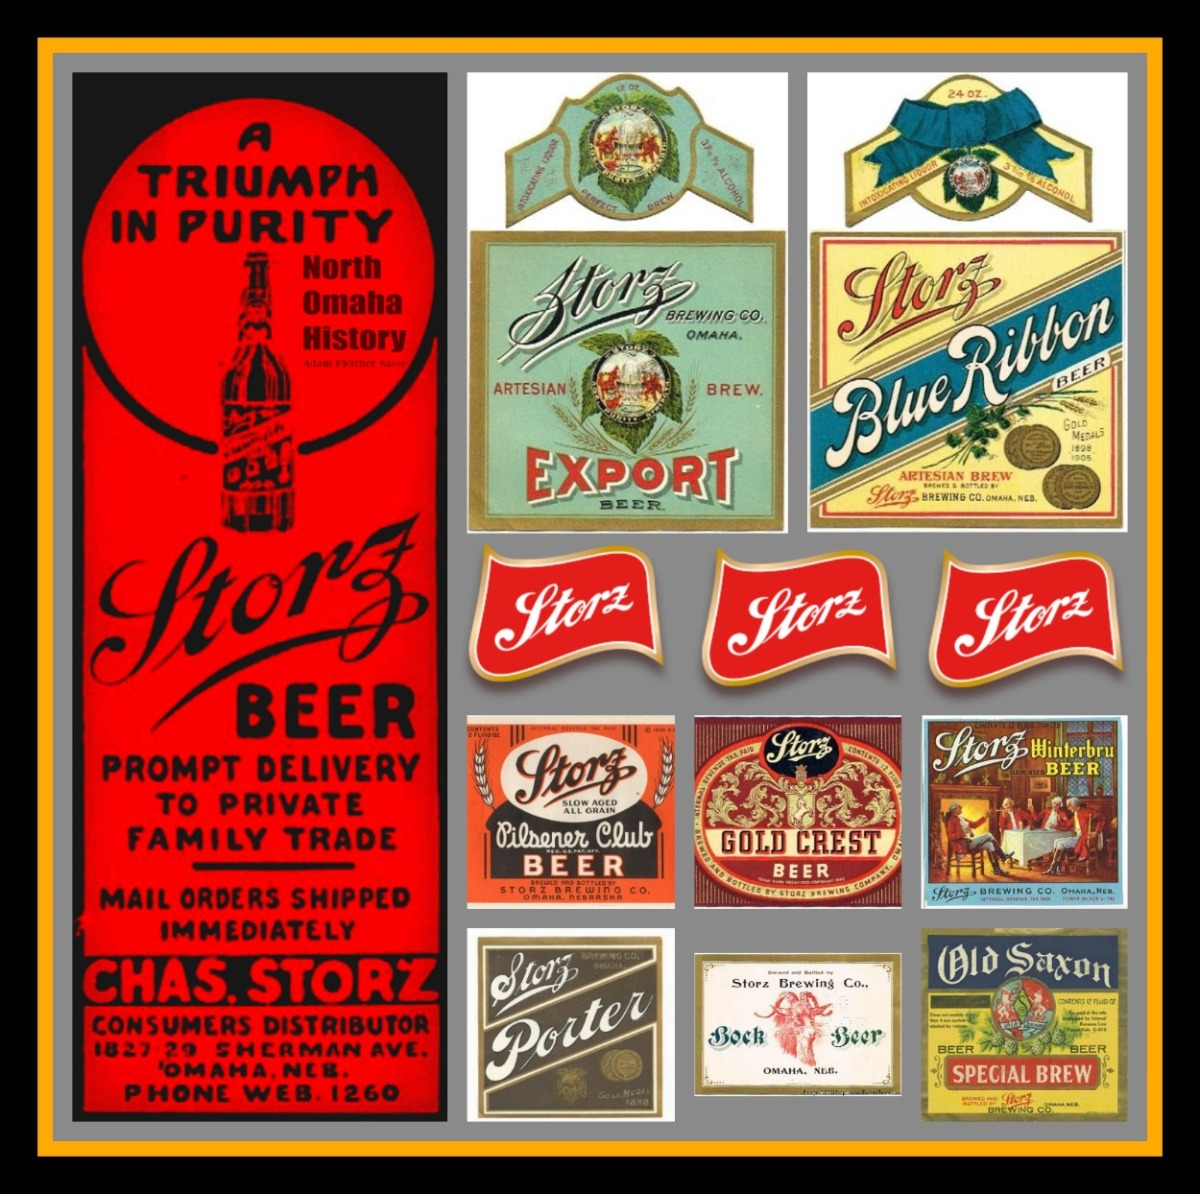 Pictured here are labels for Storz Porter, Storz Old Saxon, Storz Pilsner Club, Storz Gold Crest, Storz Winterbru, Storz Export, Storz Blue Ribbon, and Storz Triumph